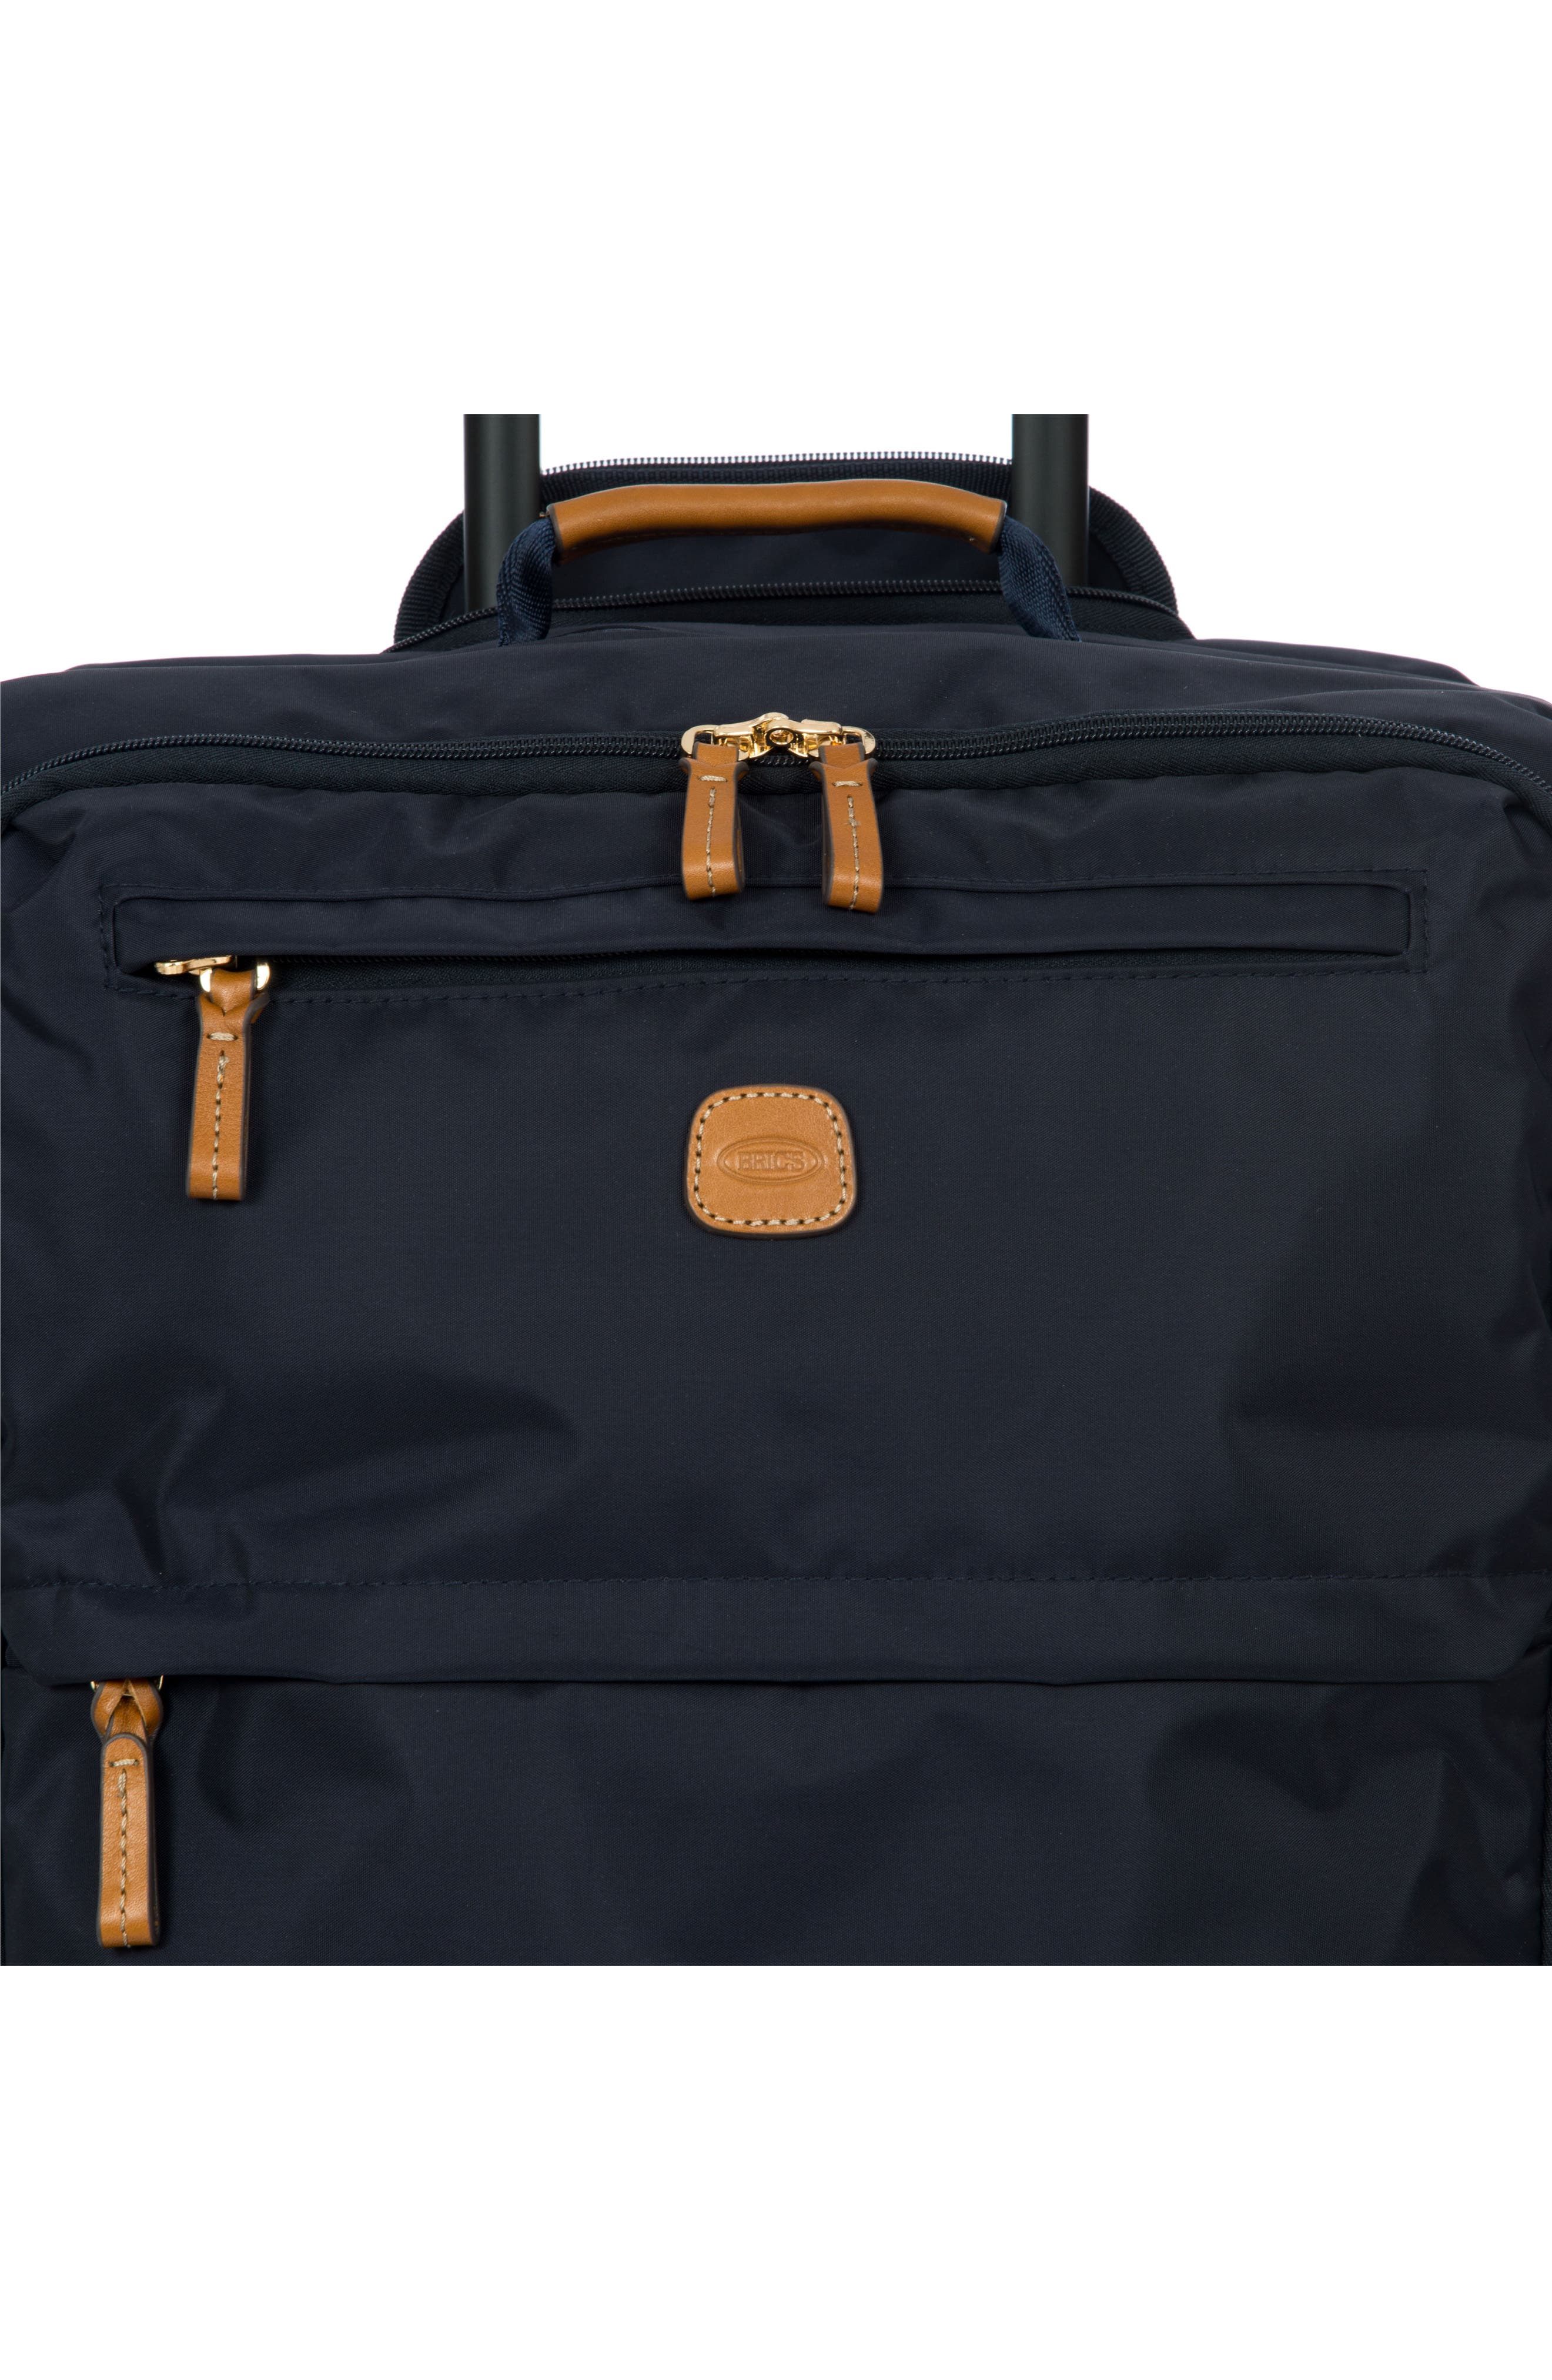 X-Bag 25-Inch Spinner Suitcase,                             Alternate thumbnail 7, color,                             Navy